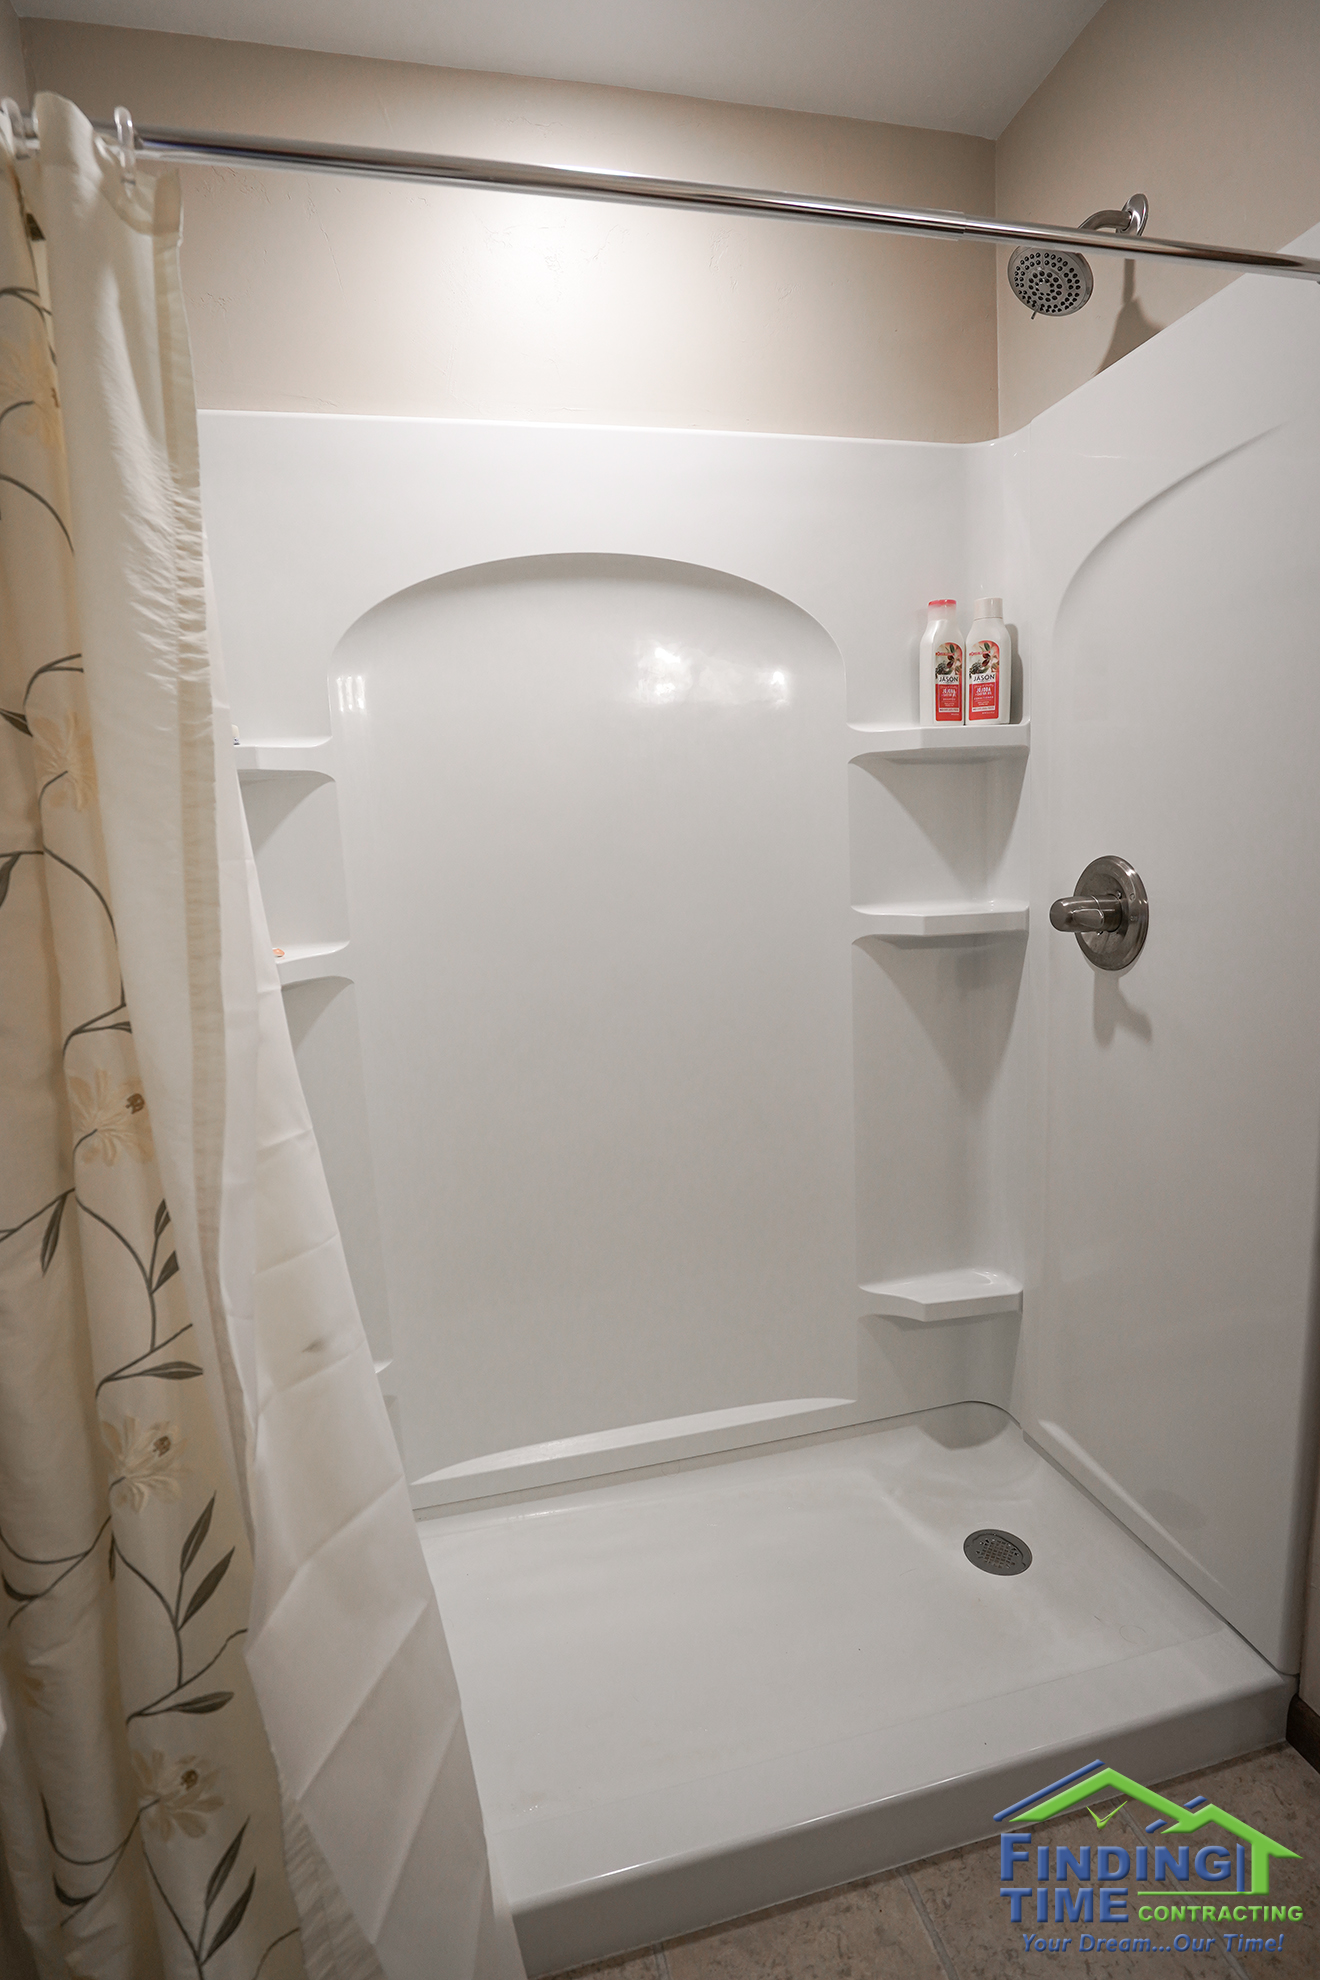 Low entry shower